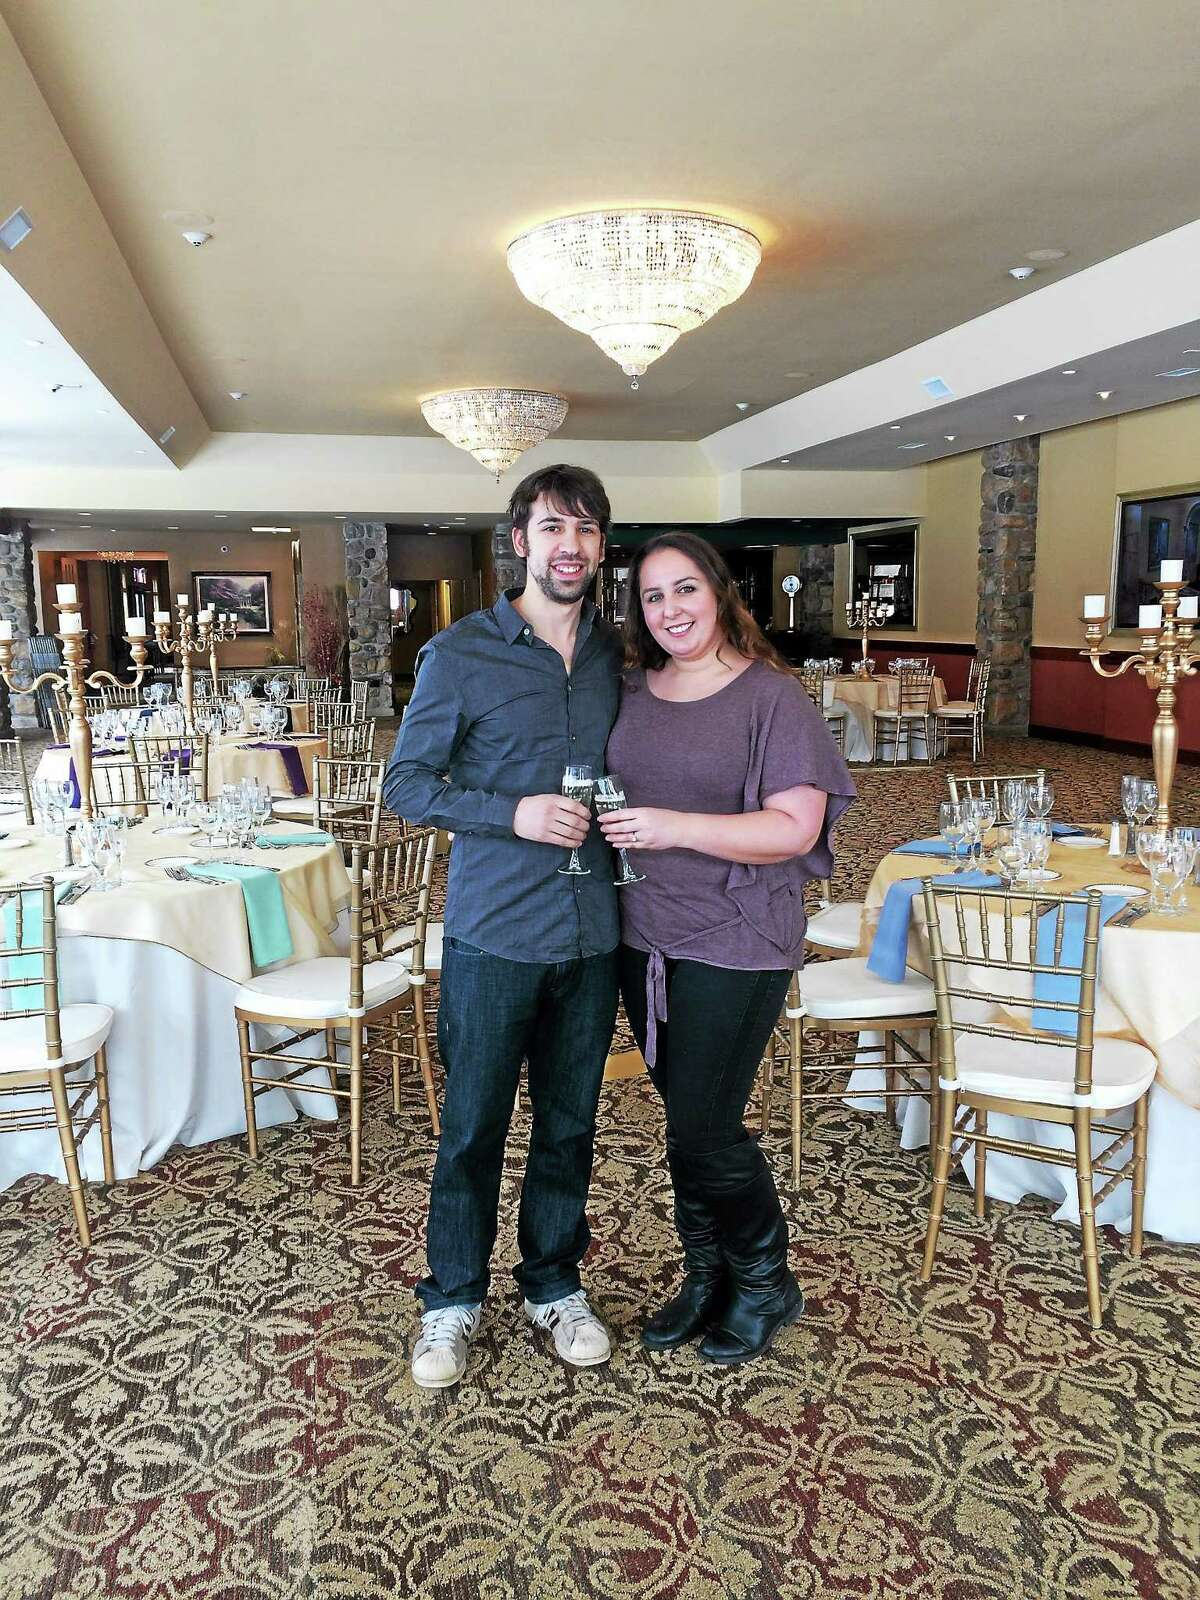 Kelly Rusin and Mark Jalbert are the winners of the grand prize giveaway at St. Clements Castle & Marina. The all-expenses-paid award was given on Feb. 1 at the Portland wedding venue's annual bridal show.